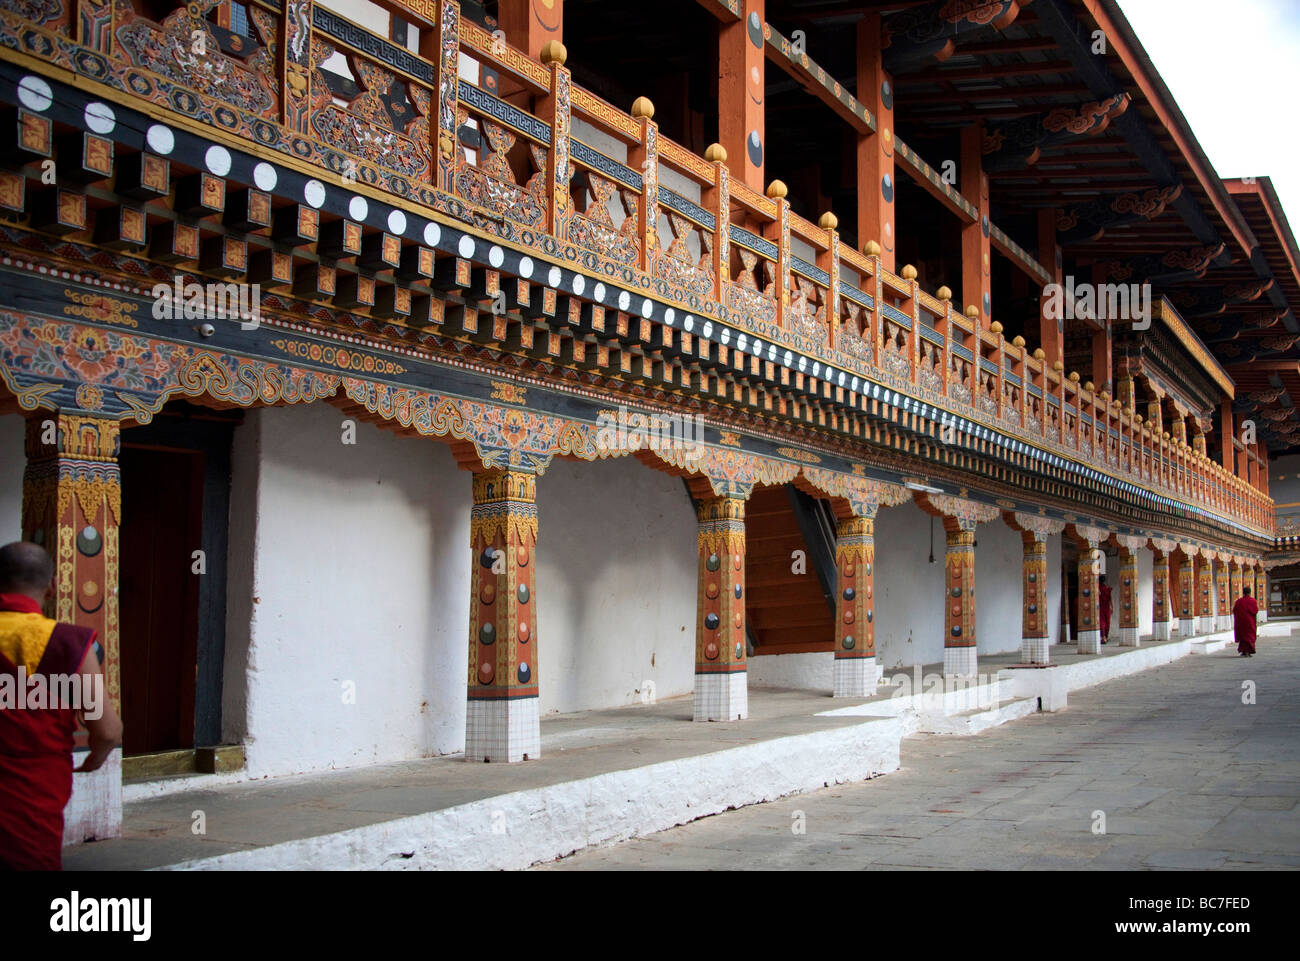 Interior courtyard with columns and architectural details ofPunakha Dzong Monastery  .Horizontal  91618_Bhutan-Punakha - Stock Image